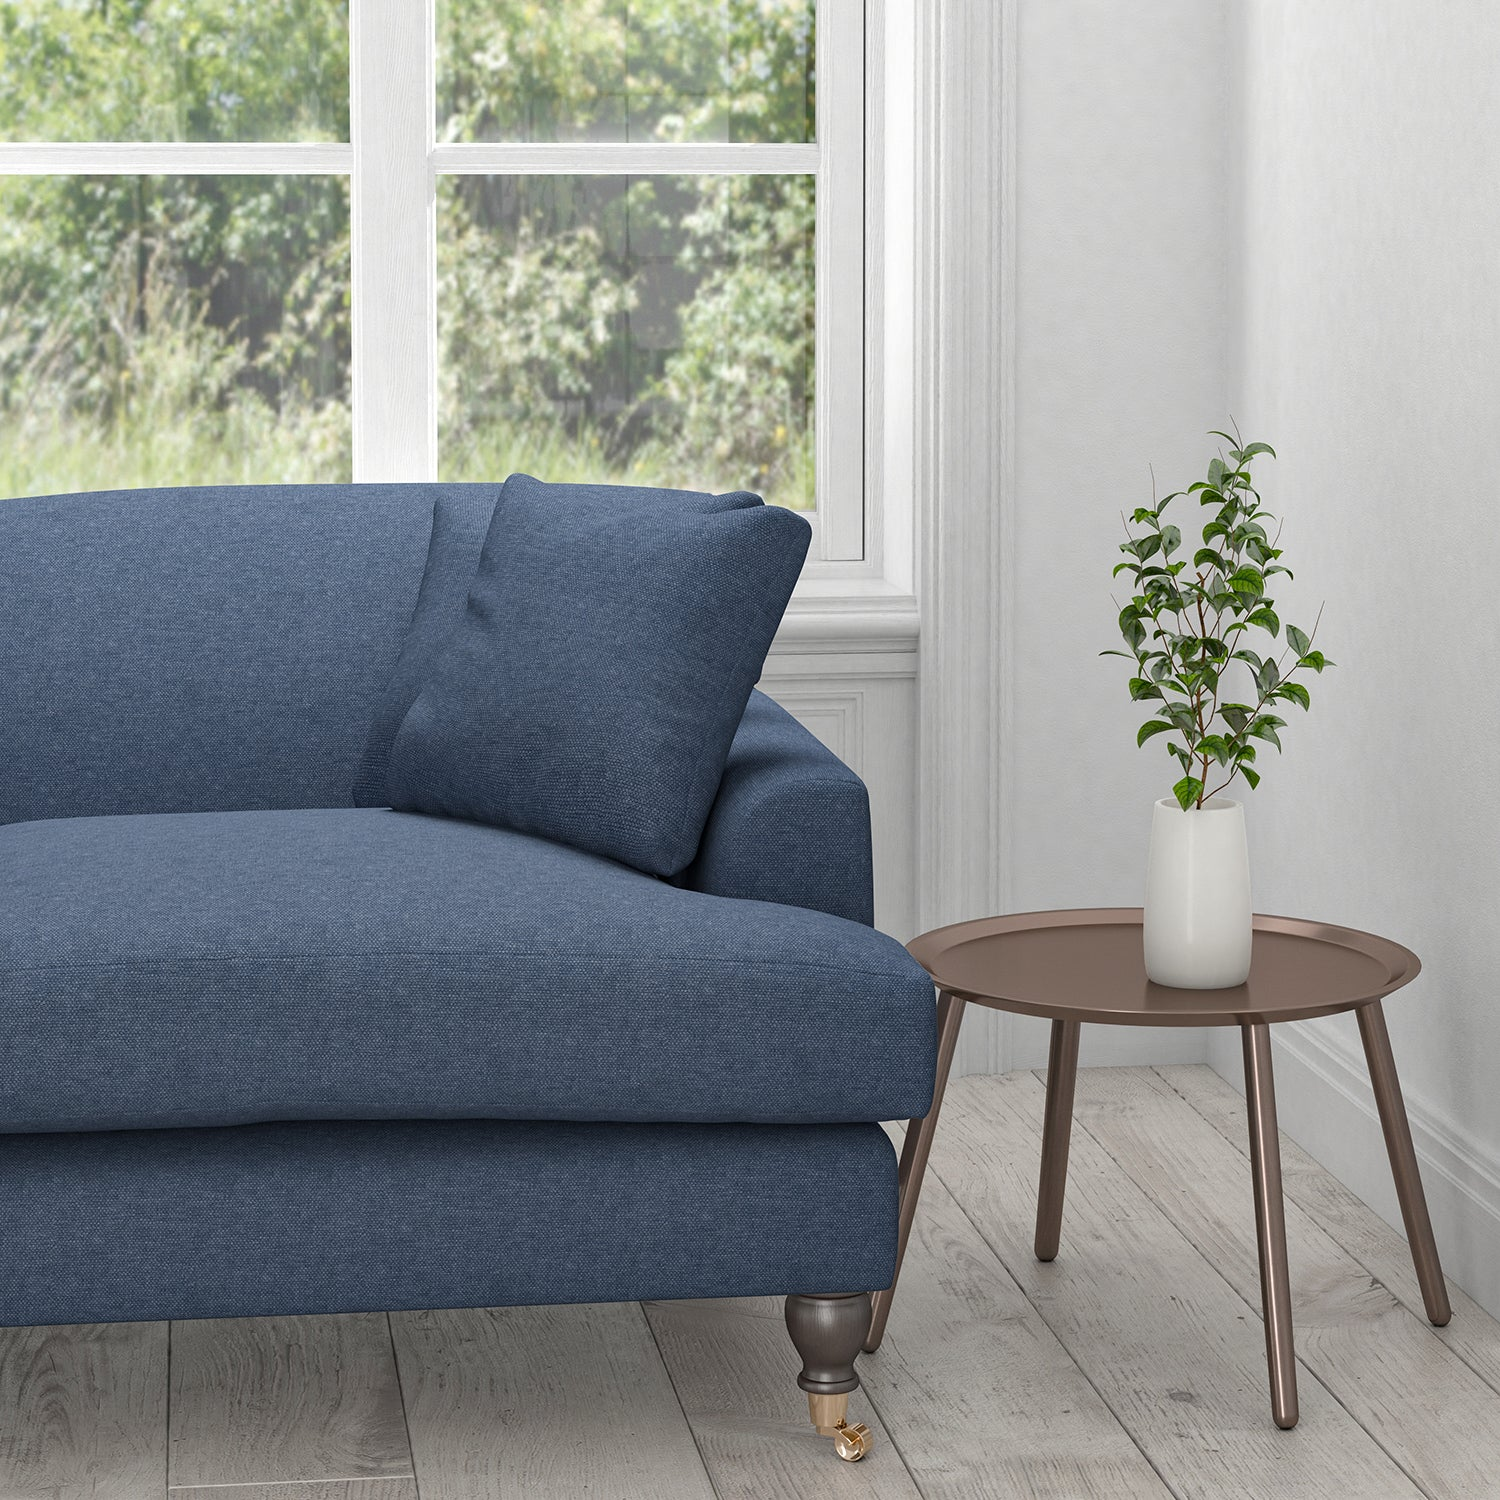 Sofa upholstered in a midnight blue plain cotton upholstery fabric